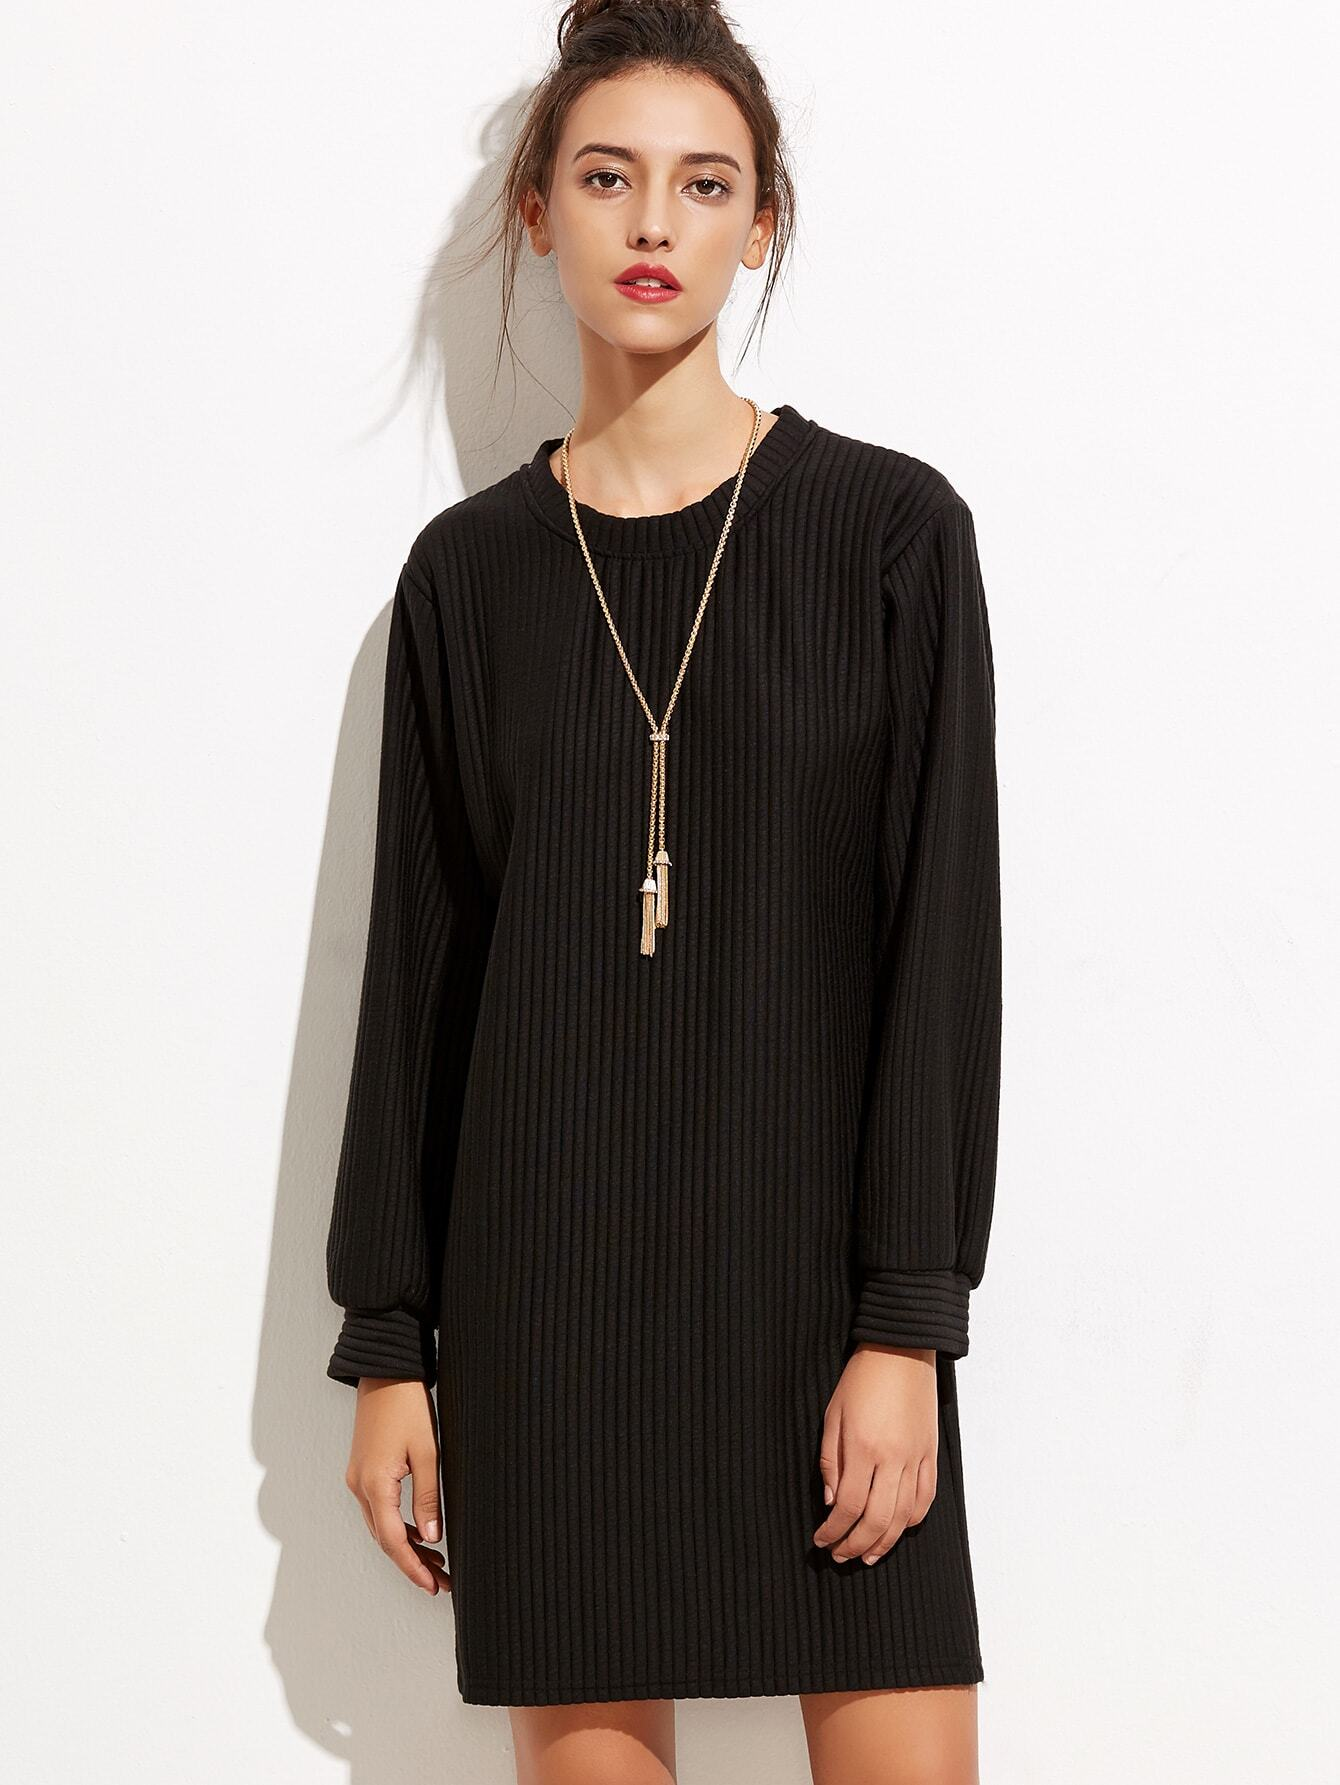 Black Ribbed Long Sleeve Tunic Dress dress160919104